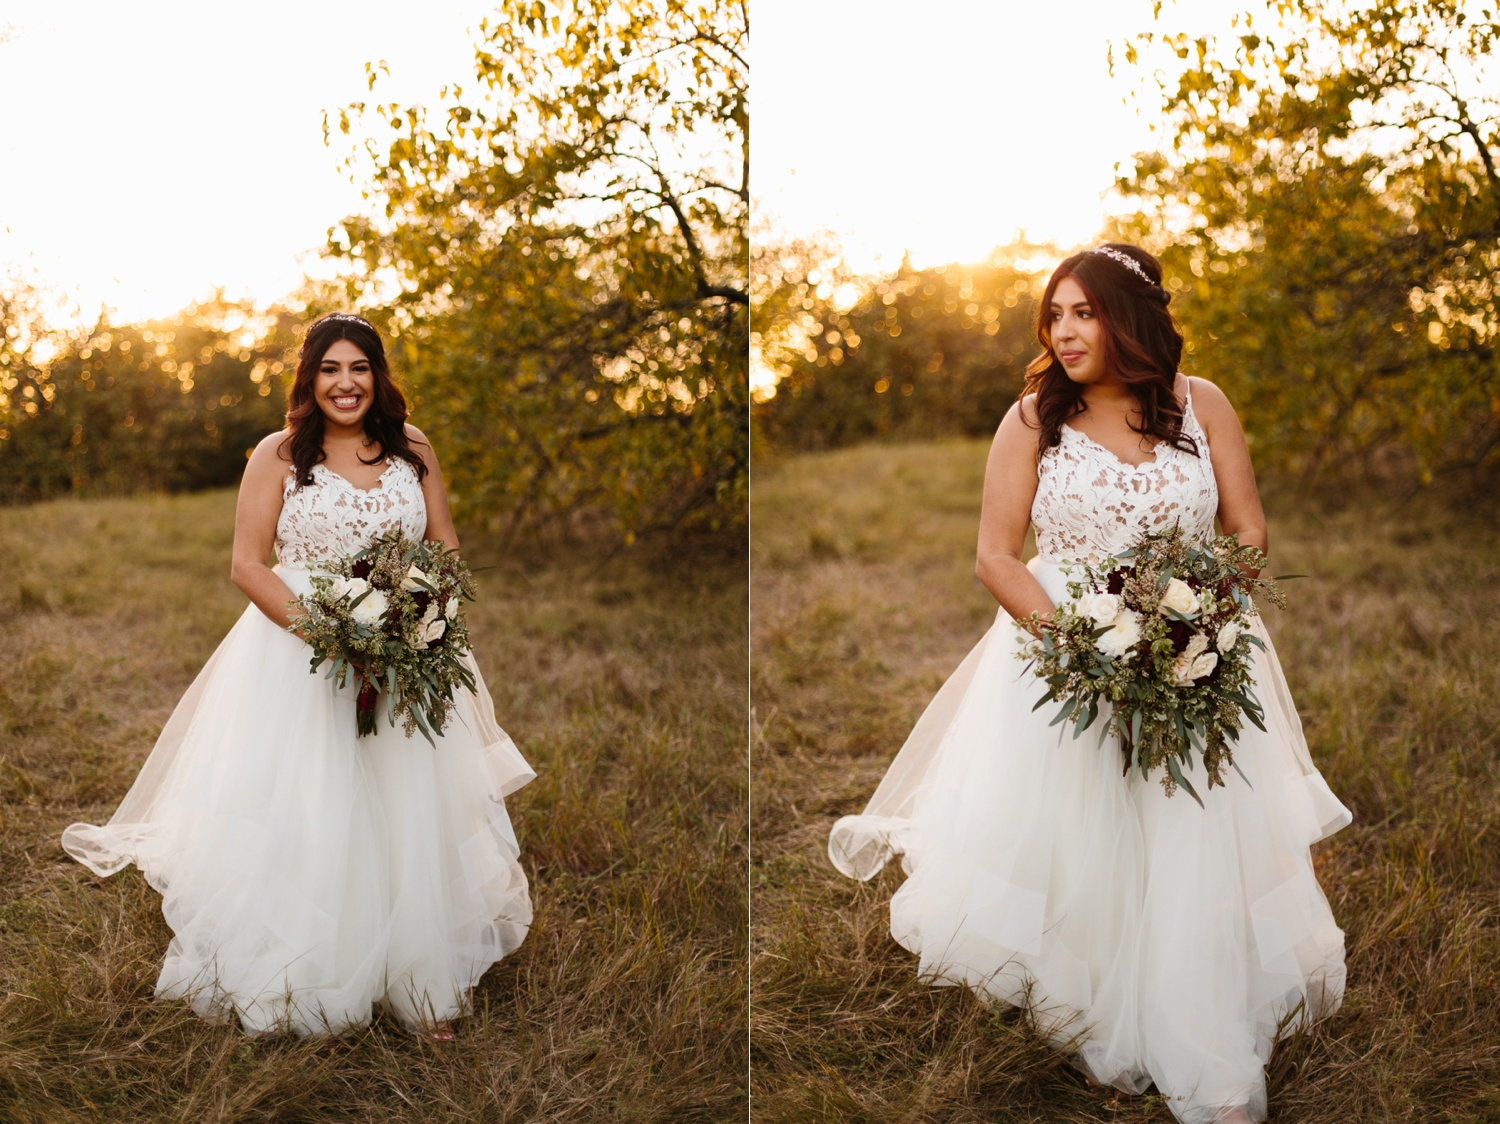 Grant + Lysette | a vibrant, deep burgundy and navy, and mixed metals wedding at Hidden Pines Chapel by North Texas Wedding Photographer Rachel Meagan Photography 239